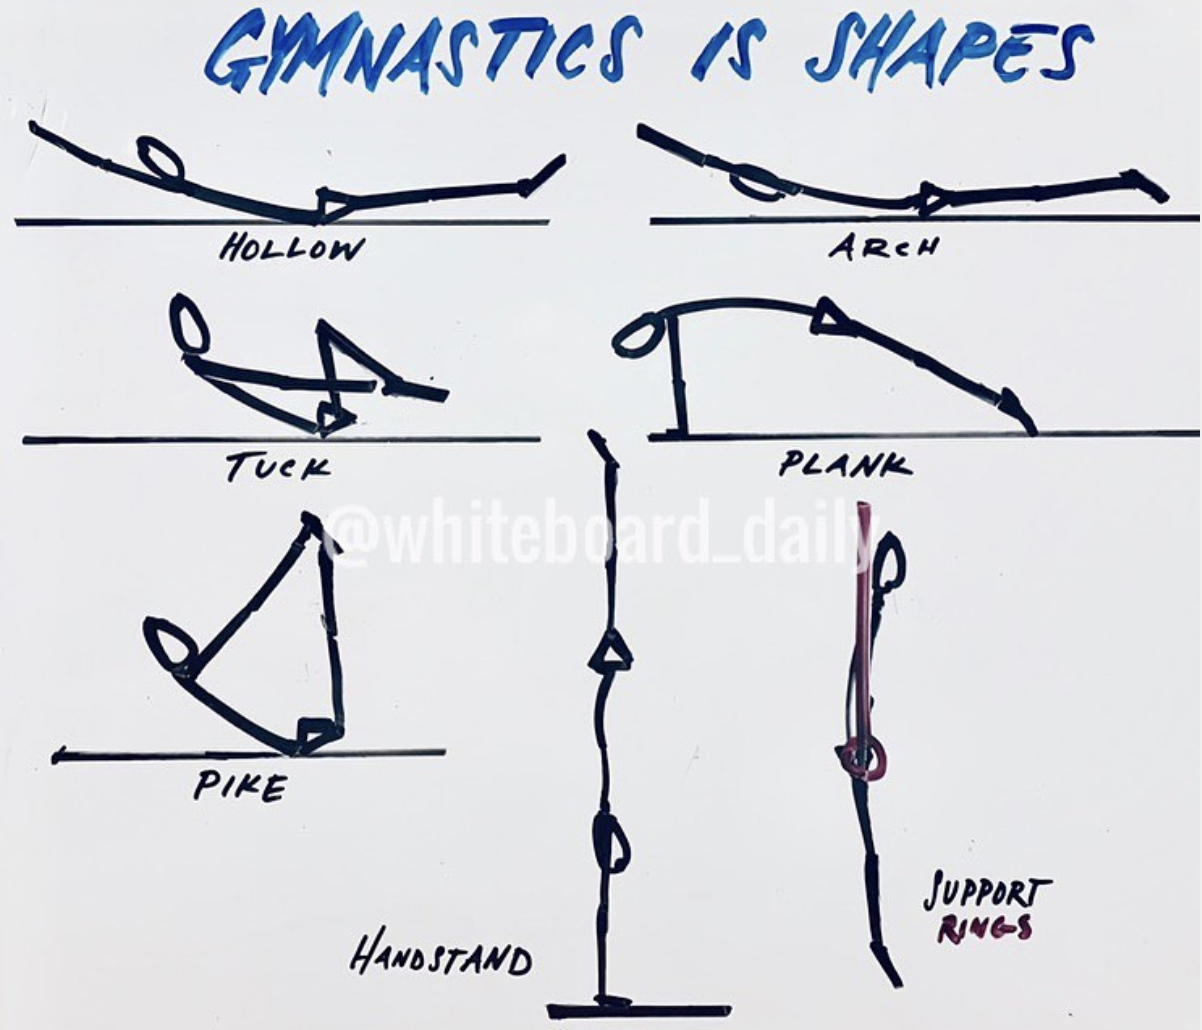 Gymnastics is All about Shapes: The Arch (Part One)